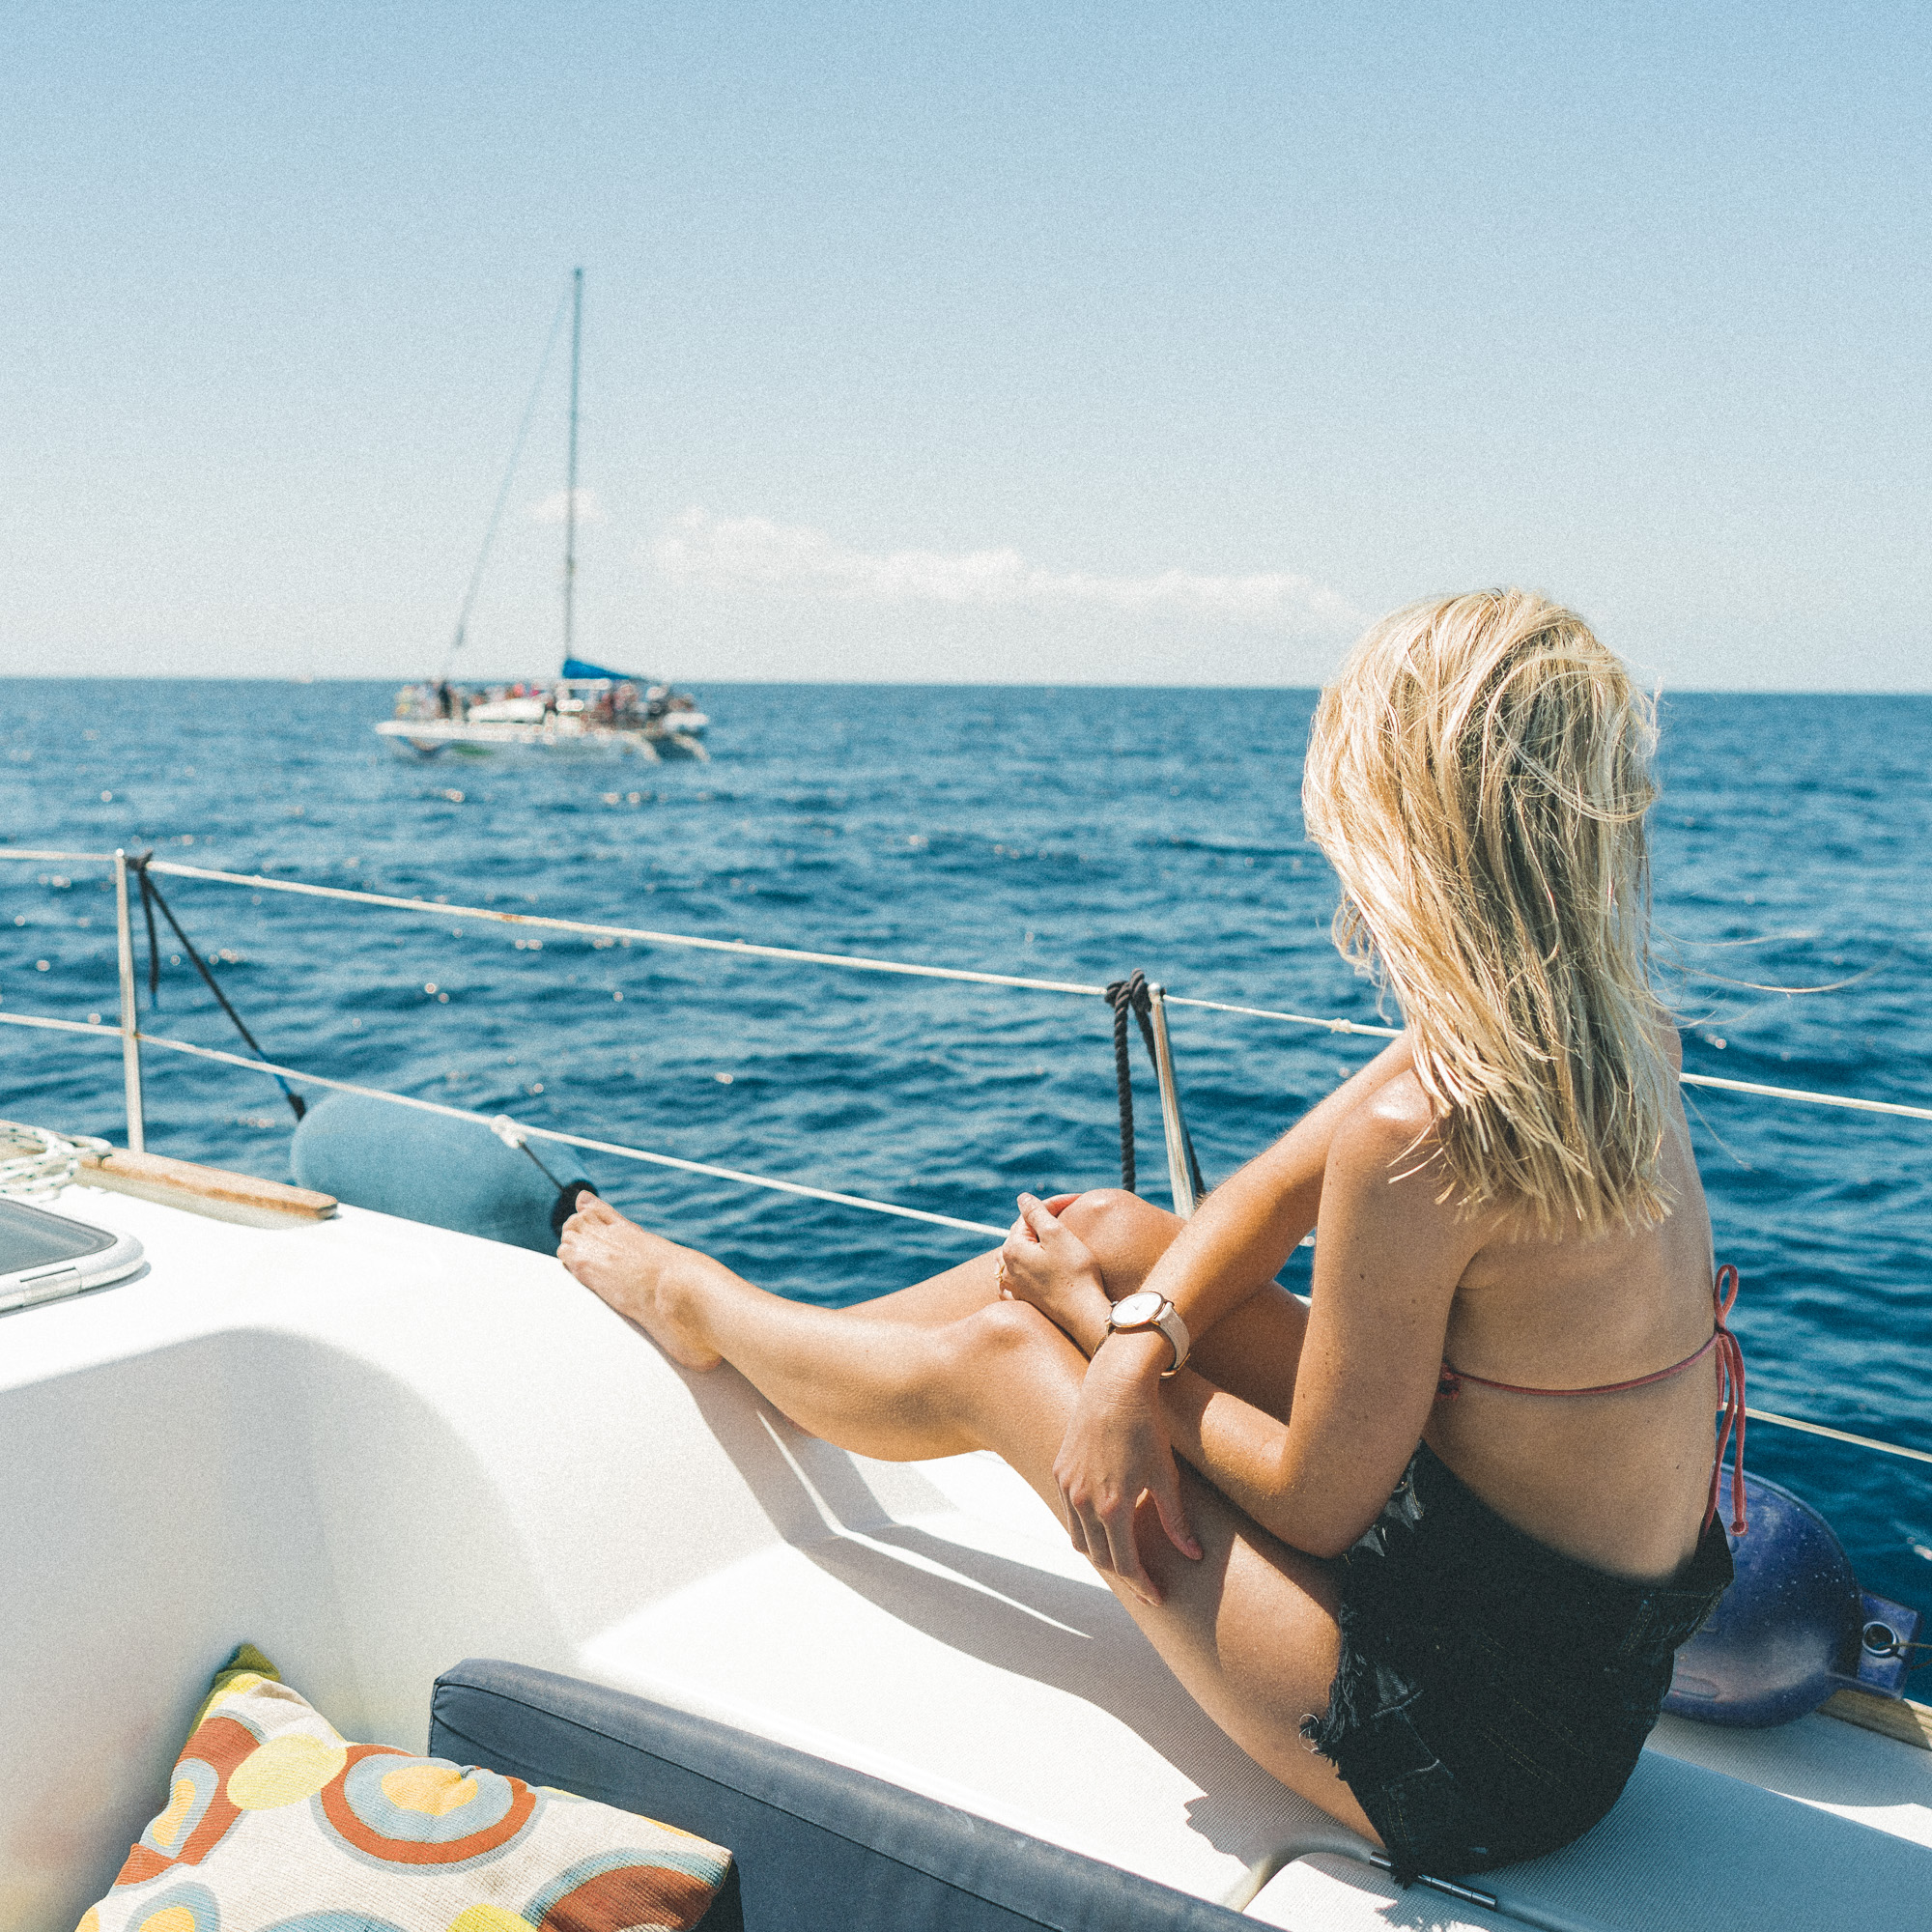 Boating day trip in Tenerife, Canary Islands, Spain